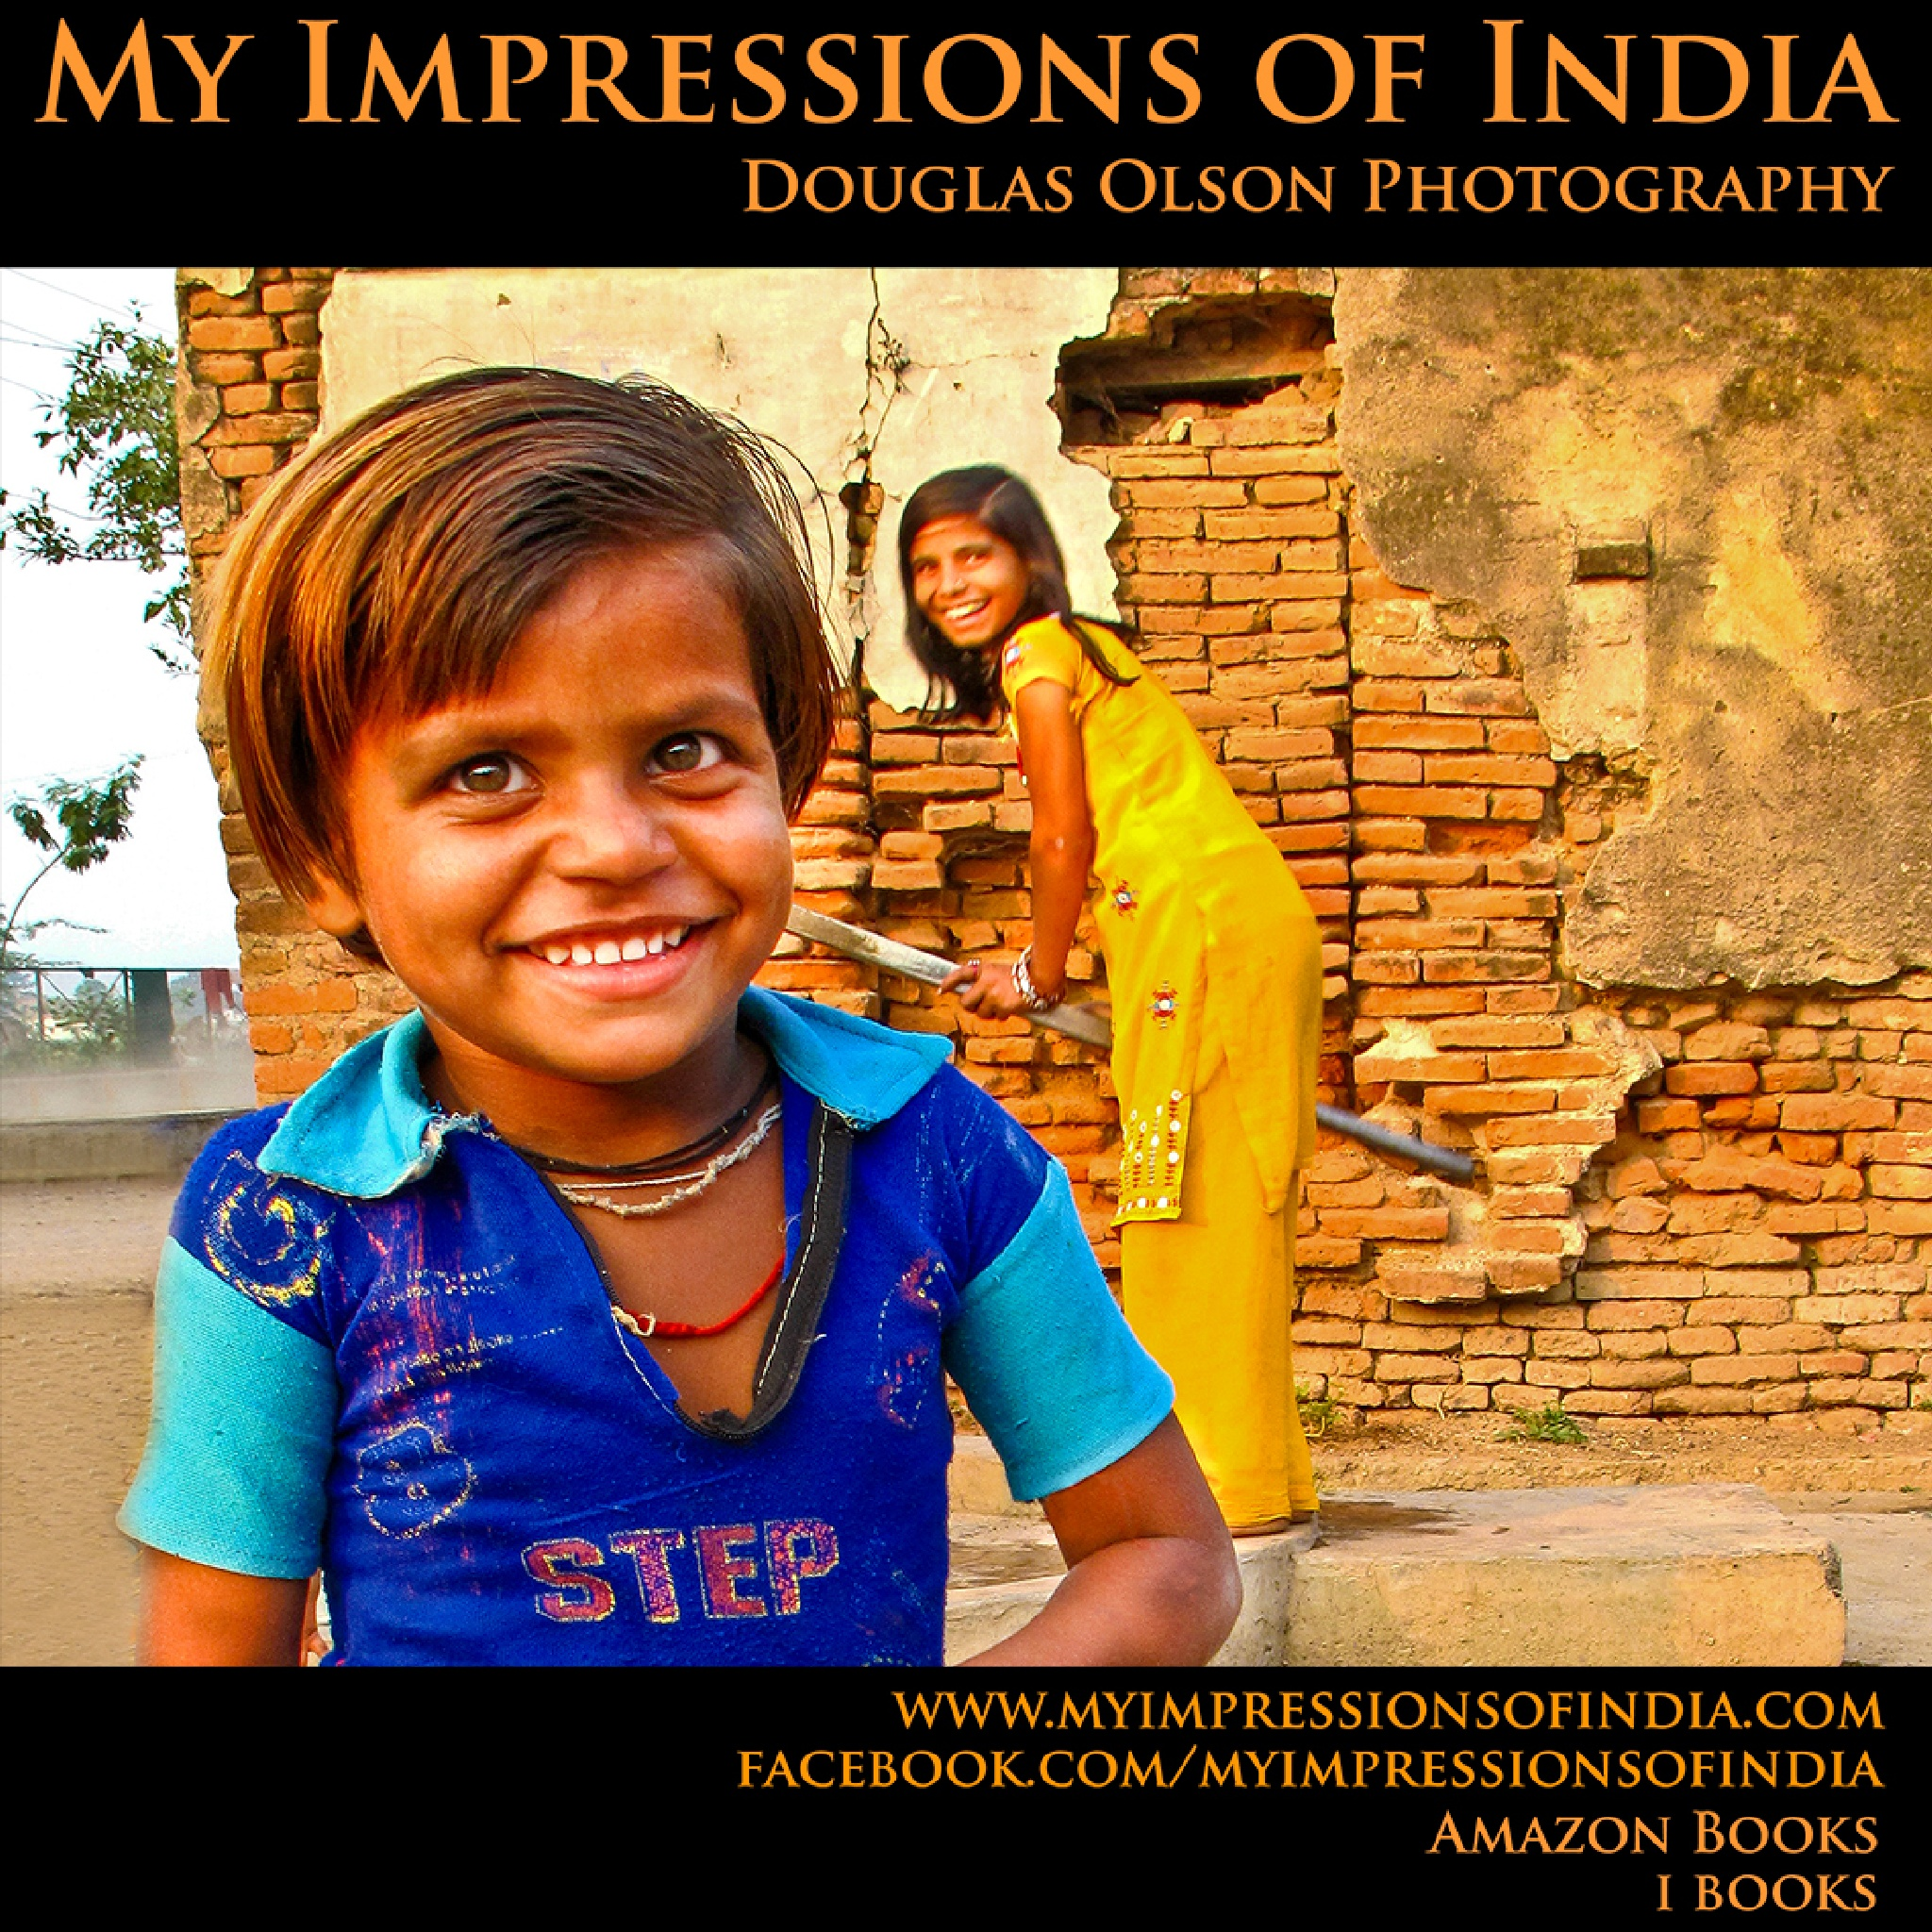 My Impressions of India by DouglasOlsonPhotography